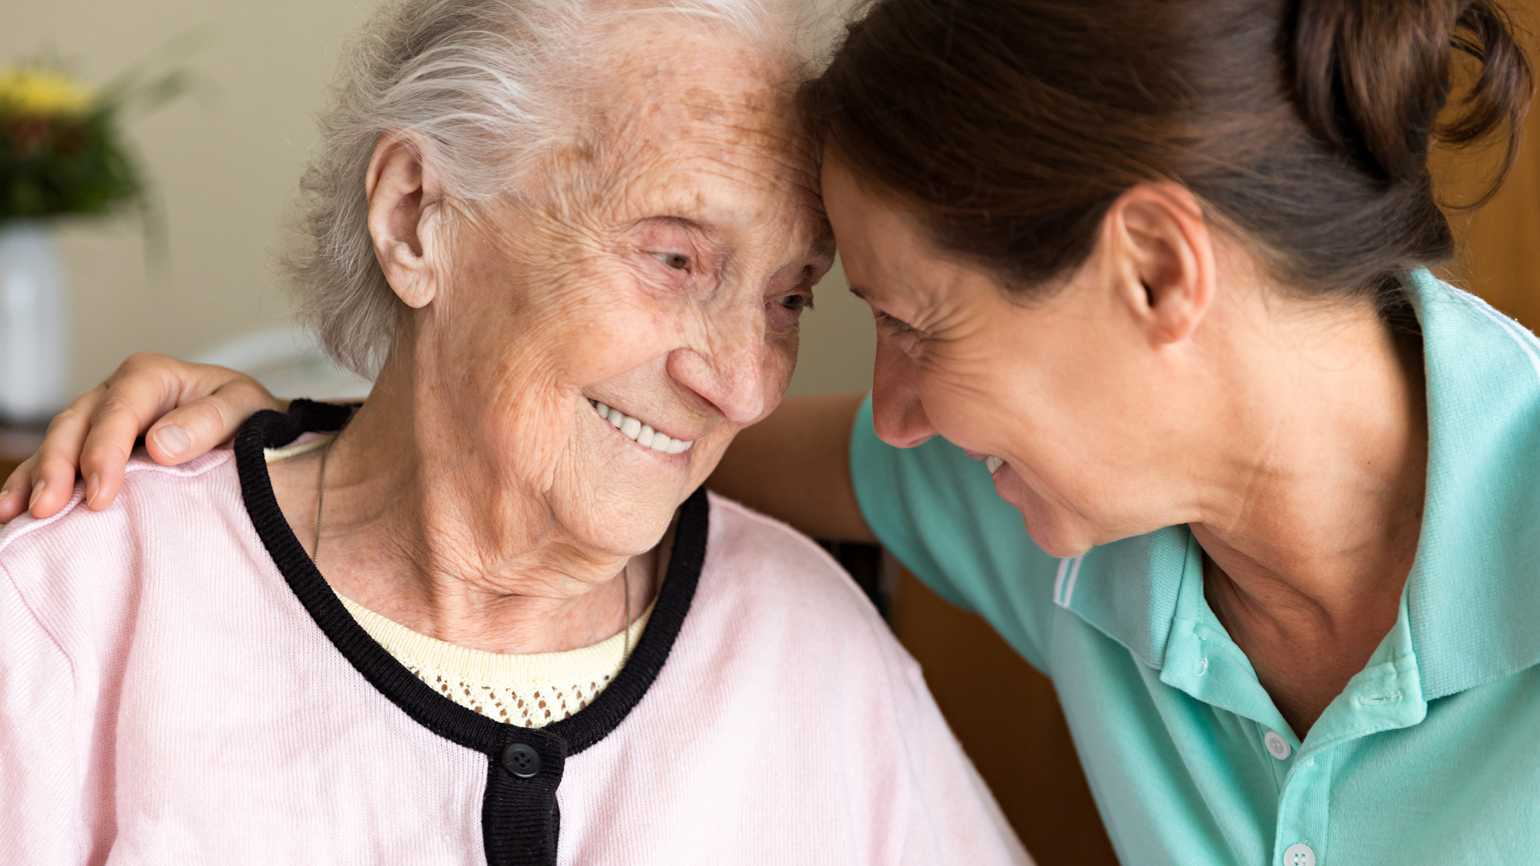 How to Decide Whether Hospice is Right for Your Loved One